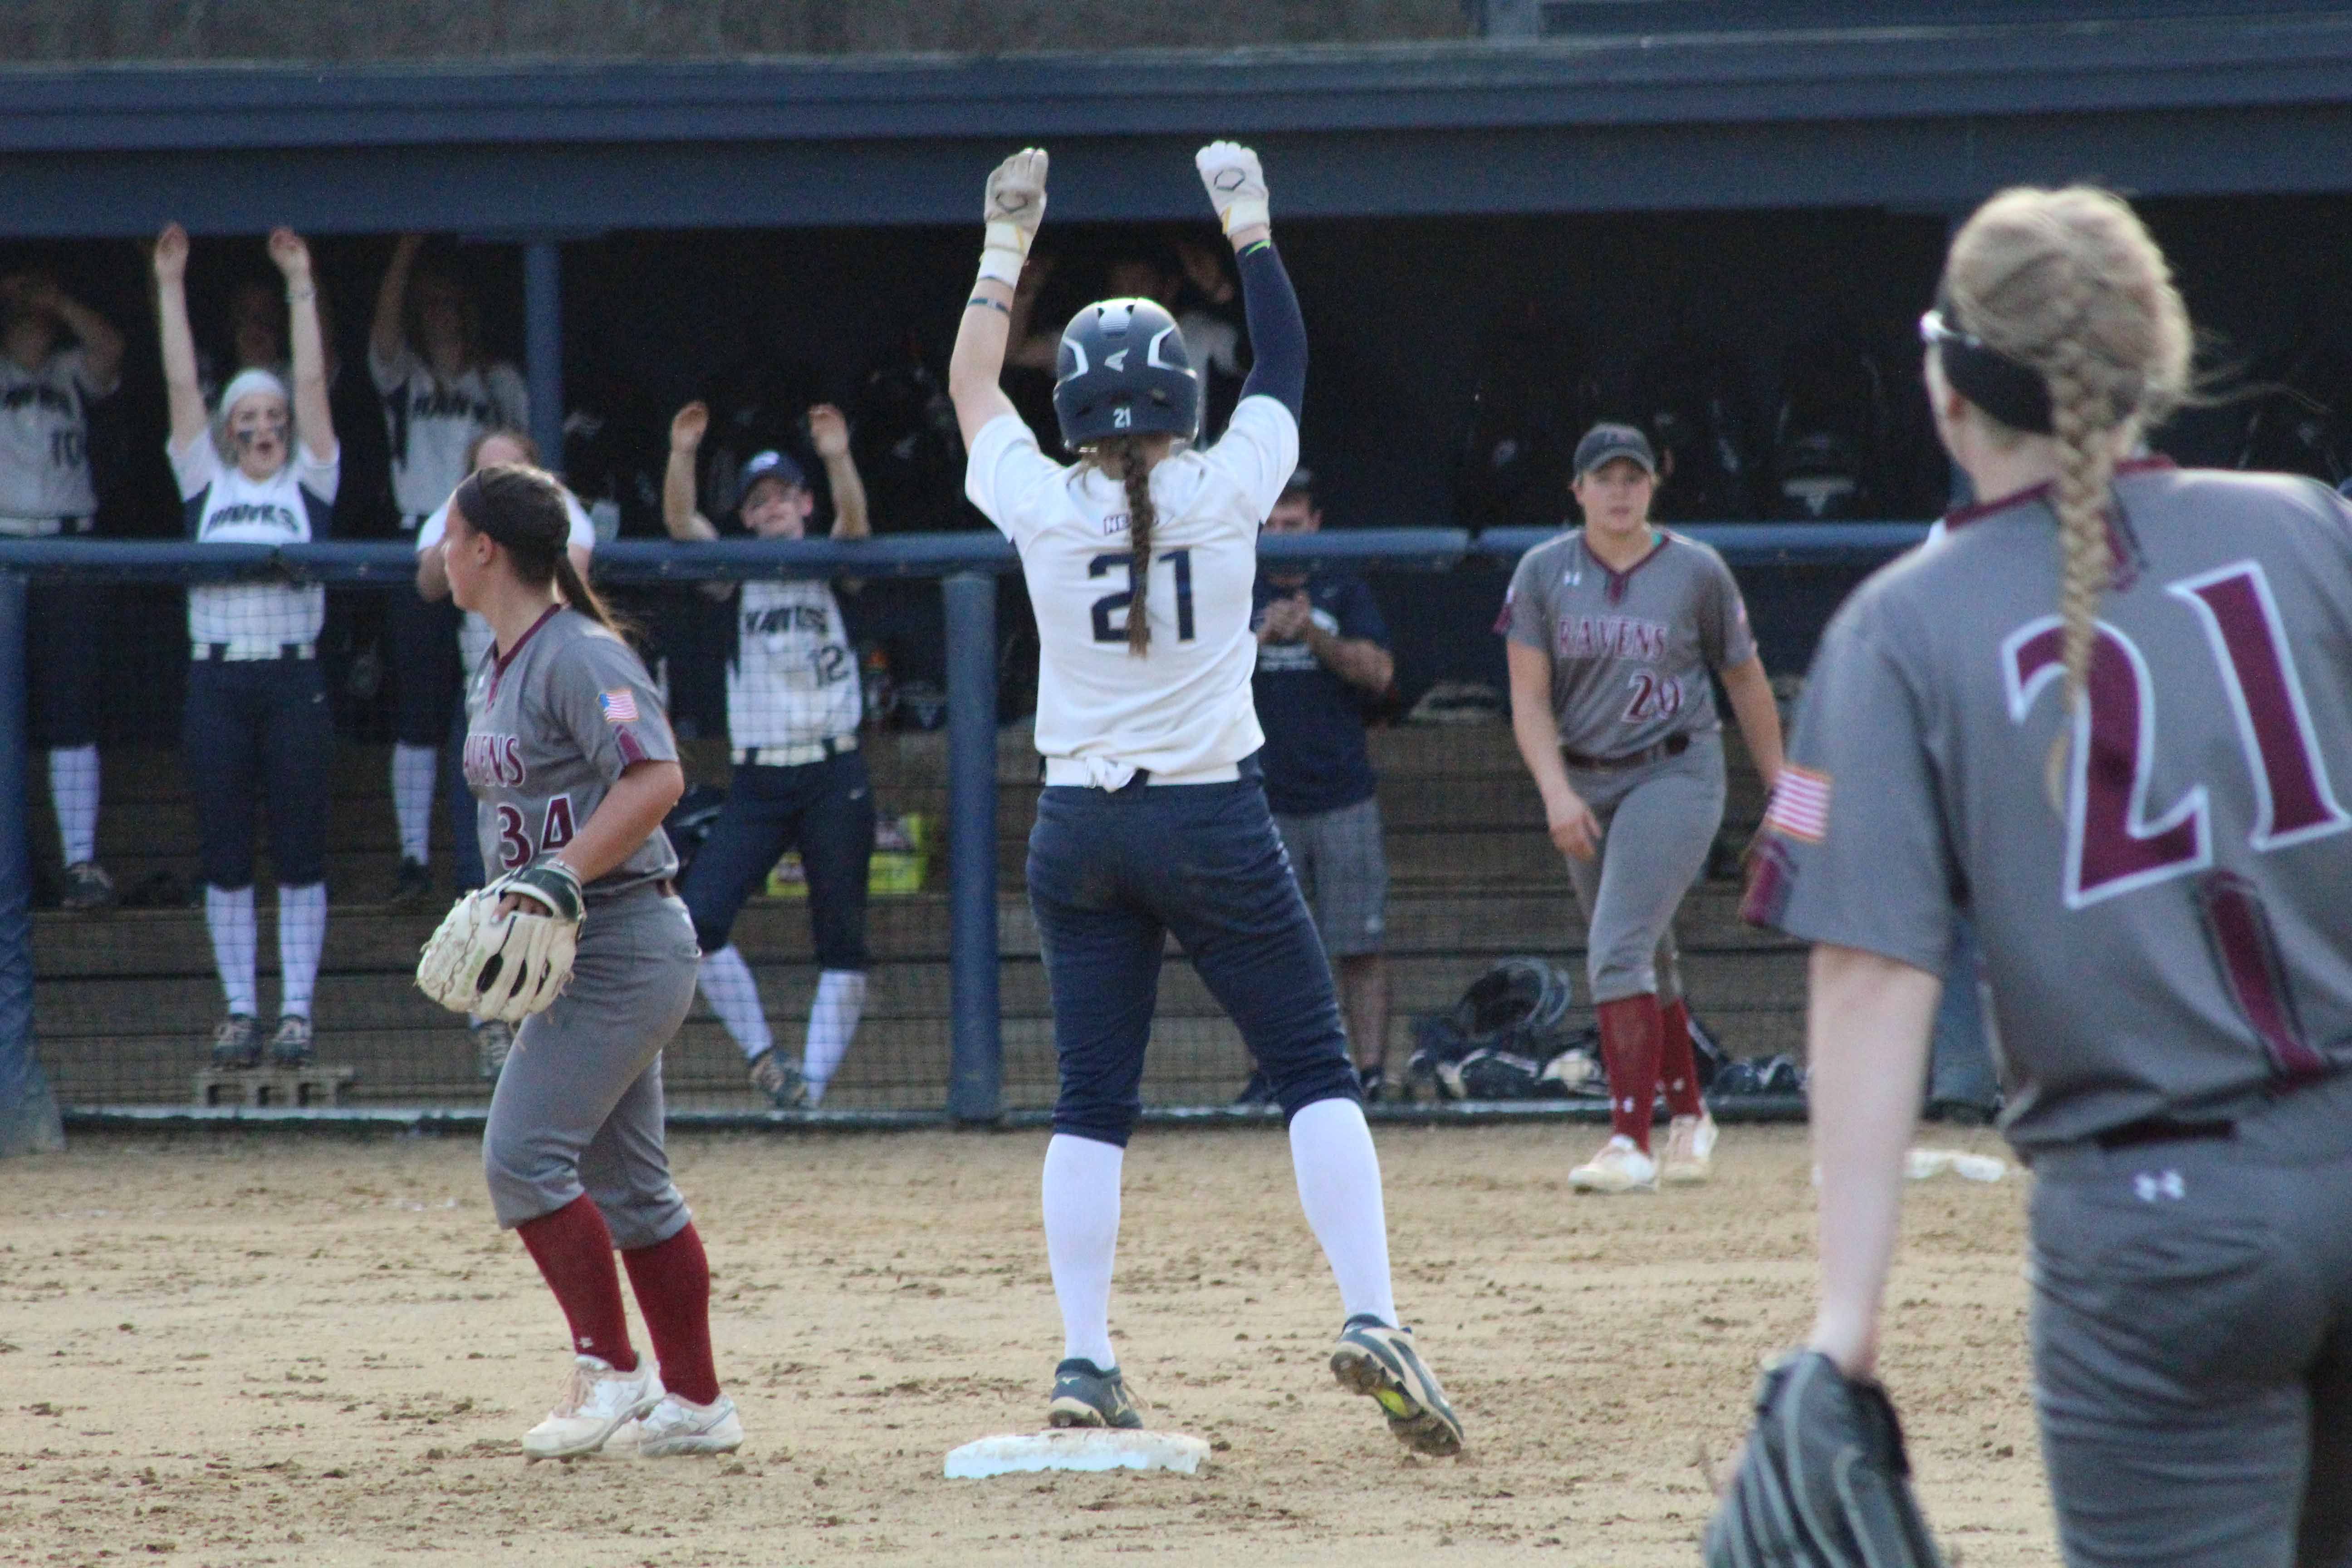 Sophomore Jordan O'Connor looks to her teammates as she celebrates her on-base.